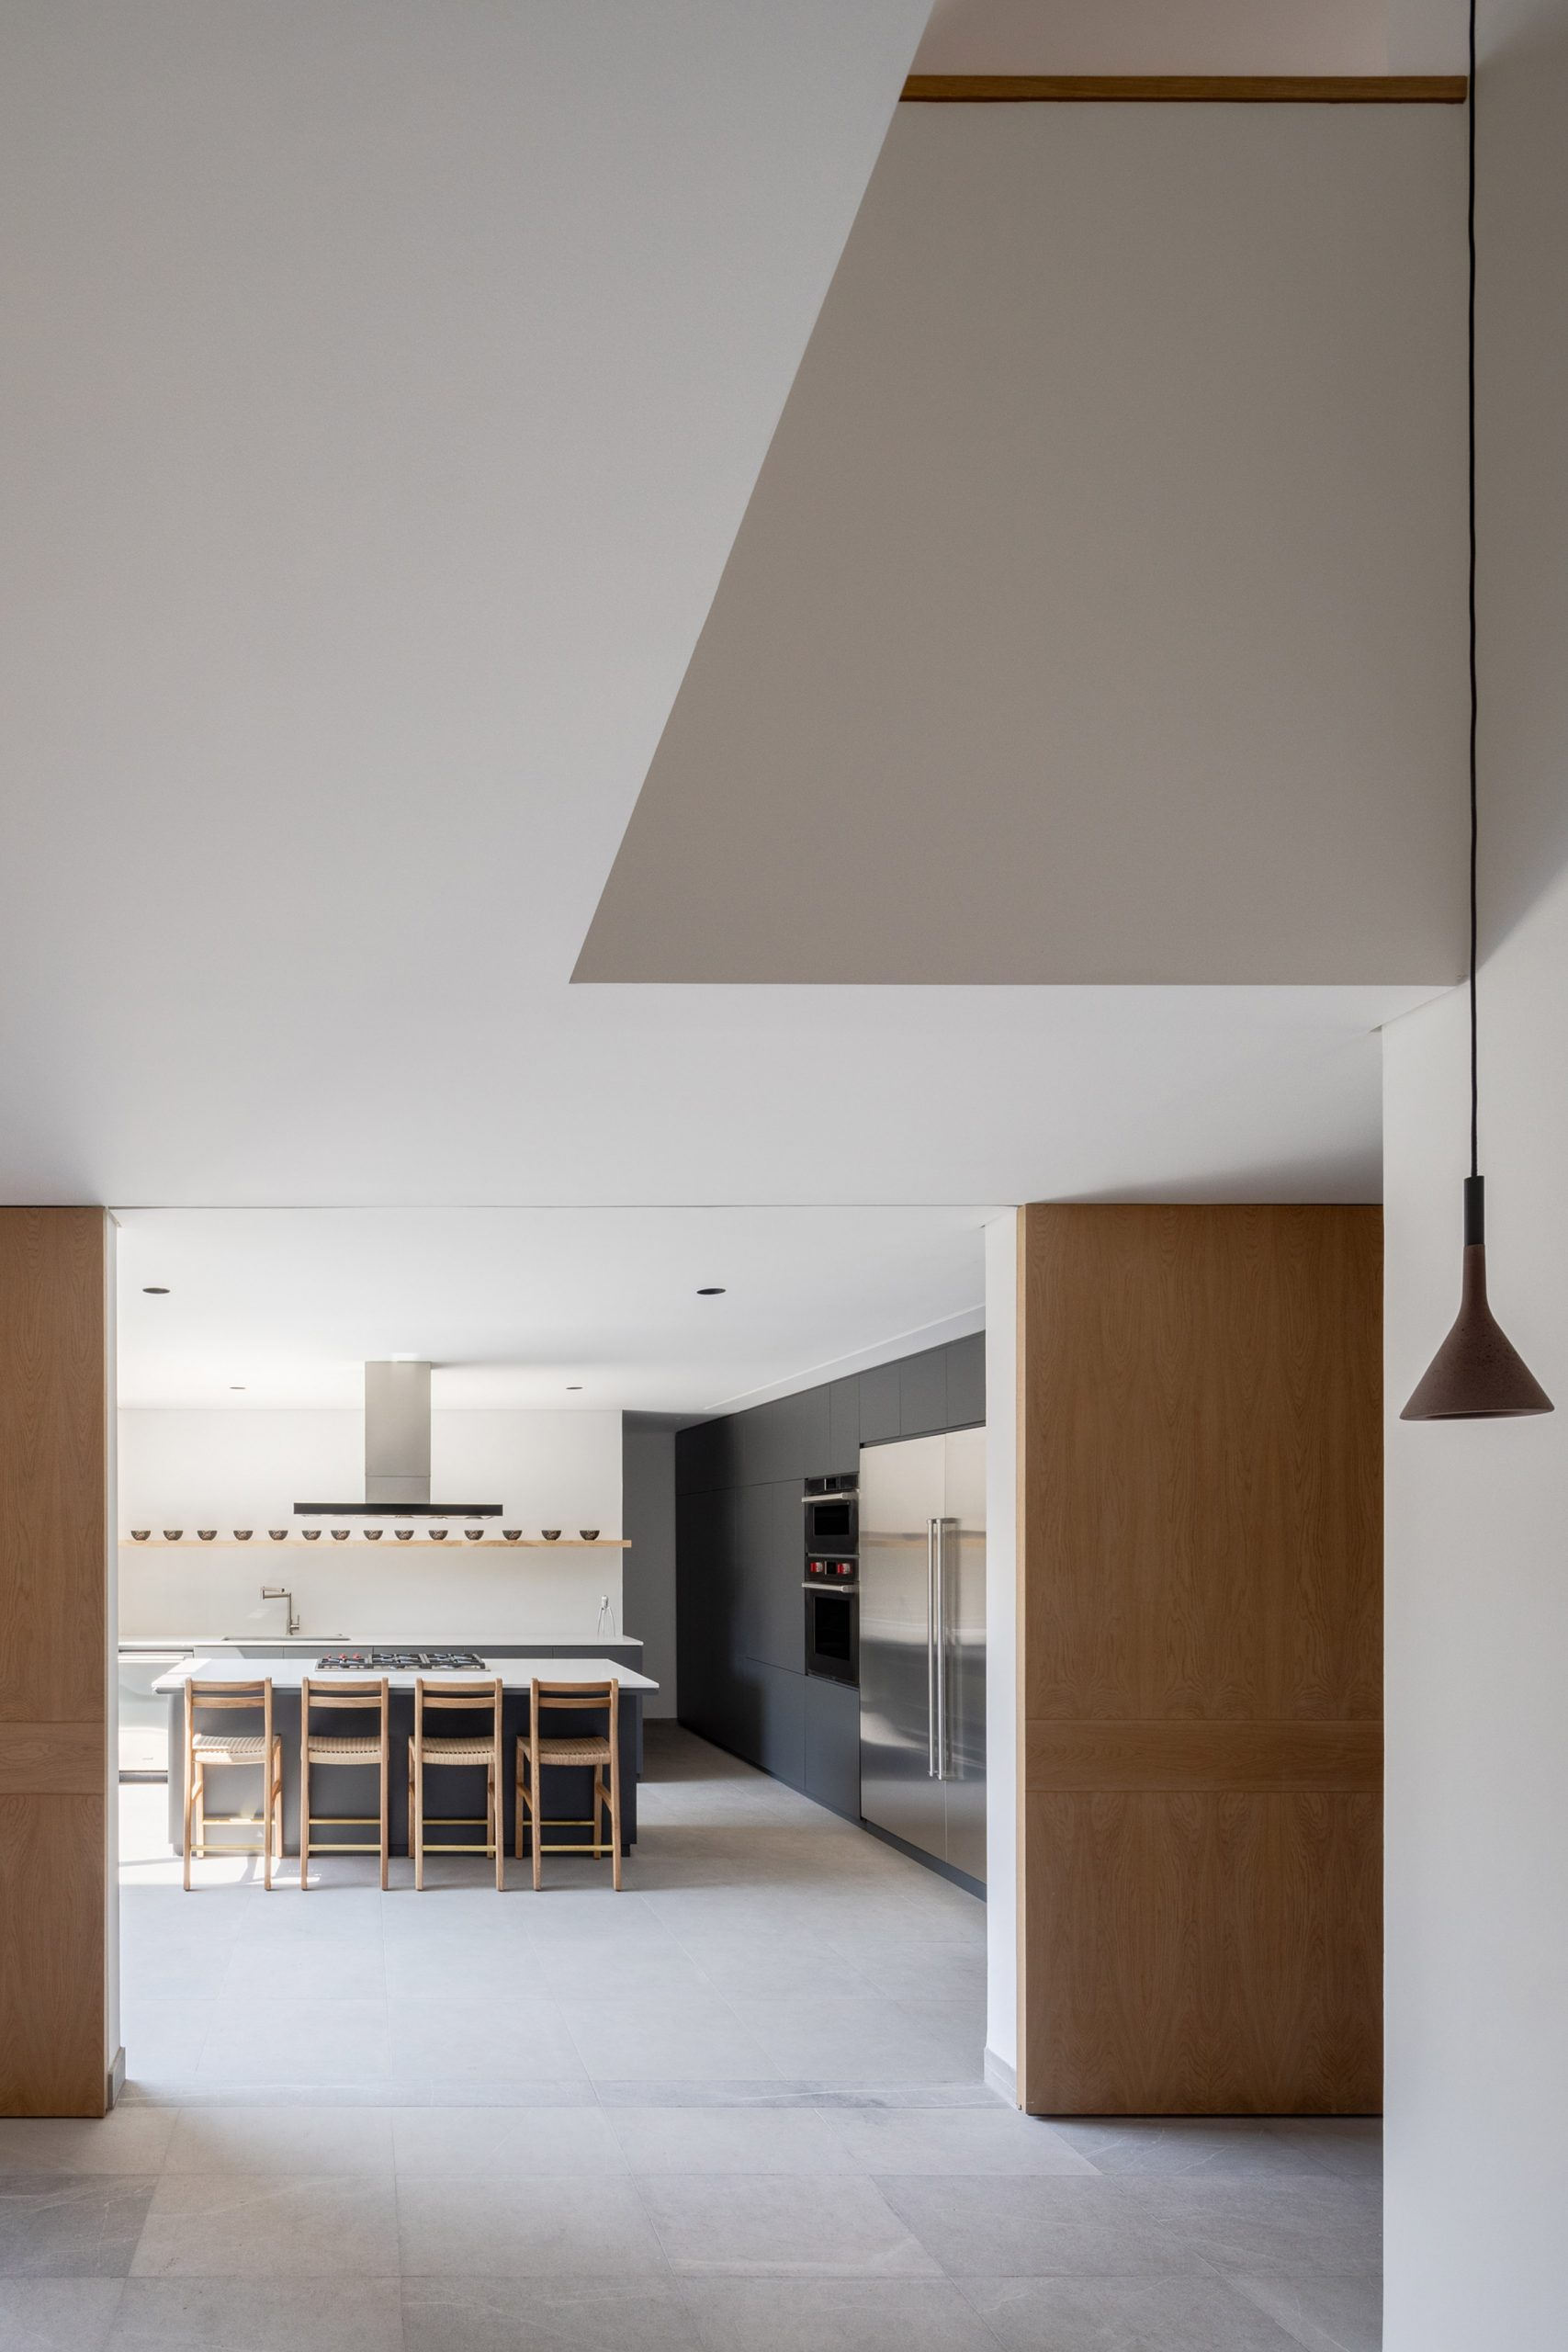 Living space in Carrizal by PPAA